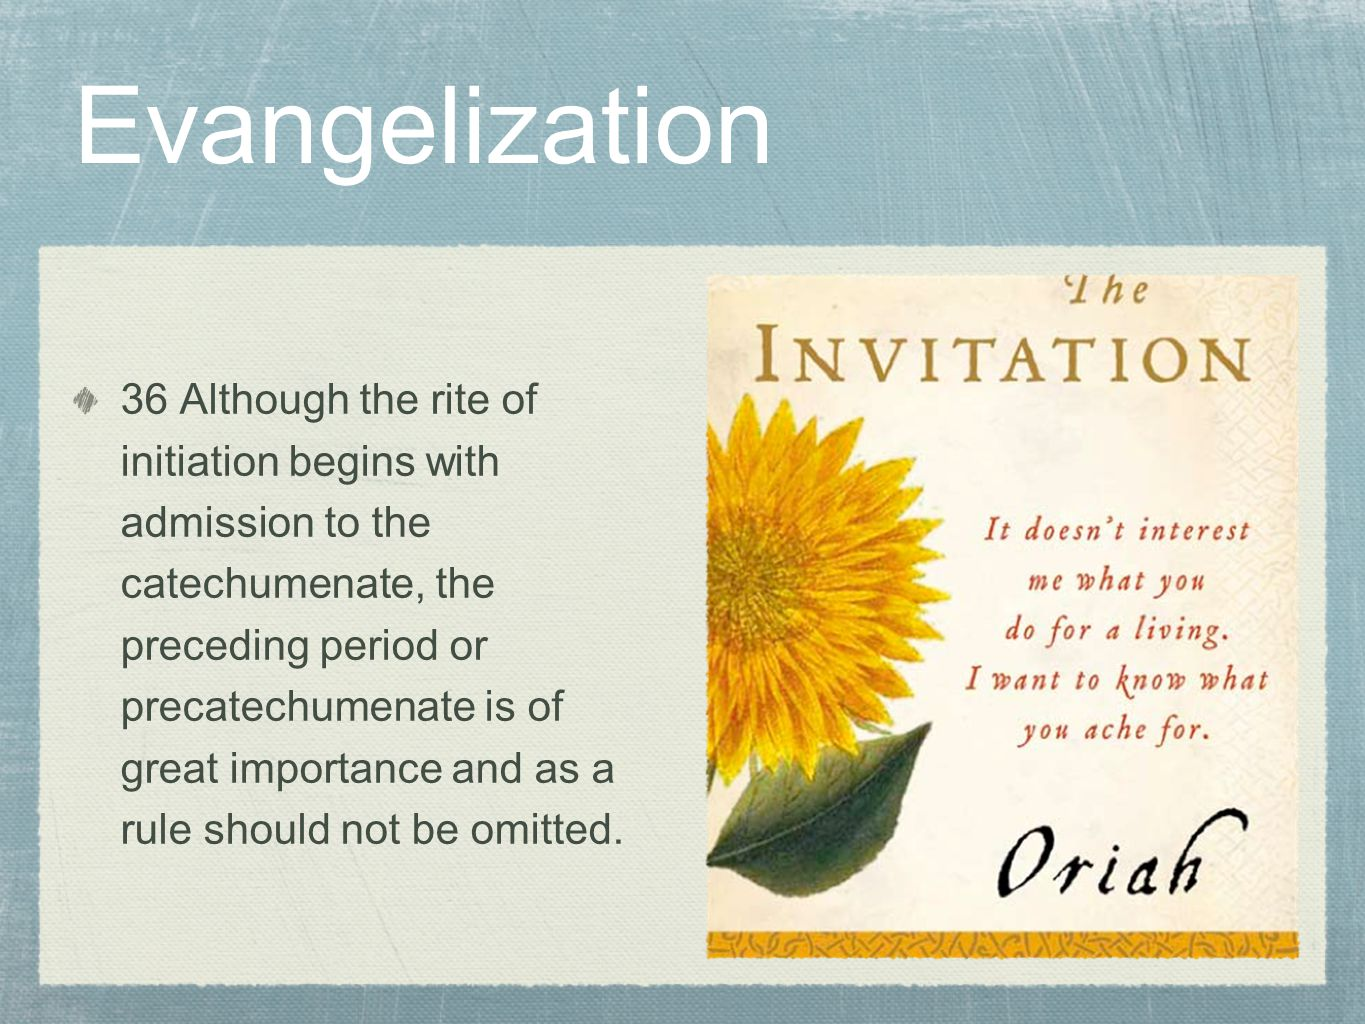 Evangelization 36 Although the rite of initiation begins with admission to the catechumenate, the preceding period or precatechumenate is of great importance and as a rule should not be omitted.